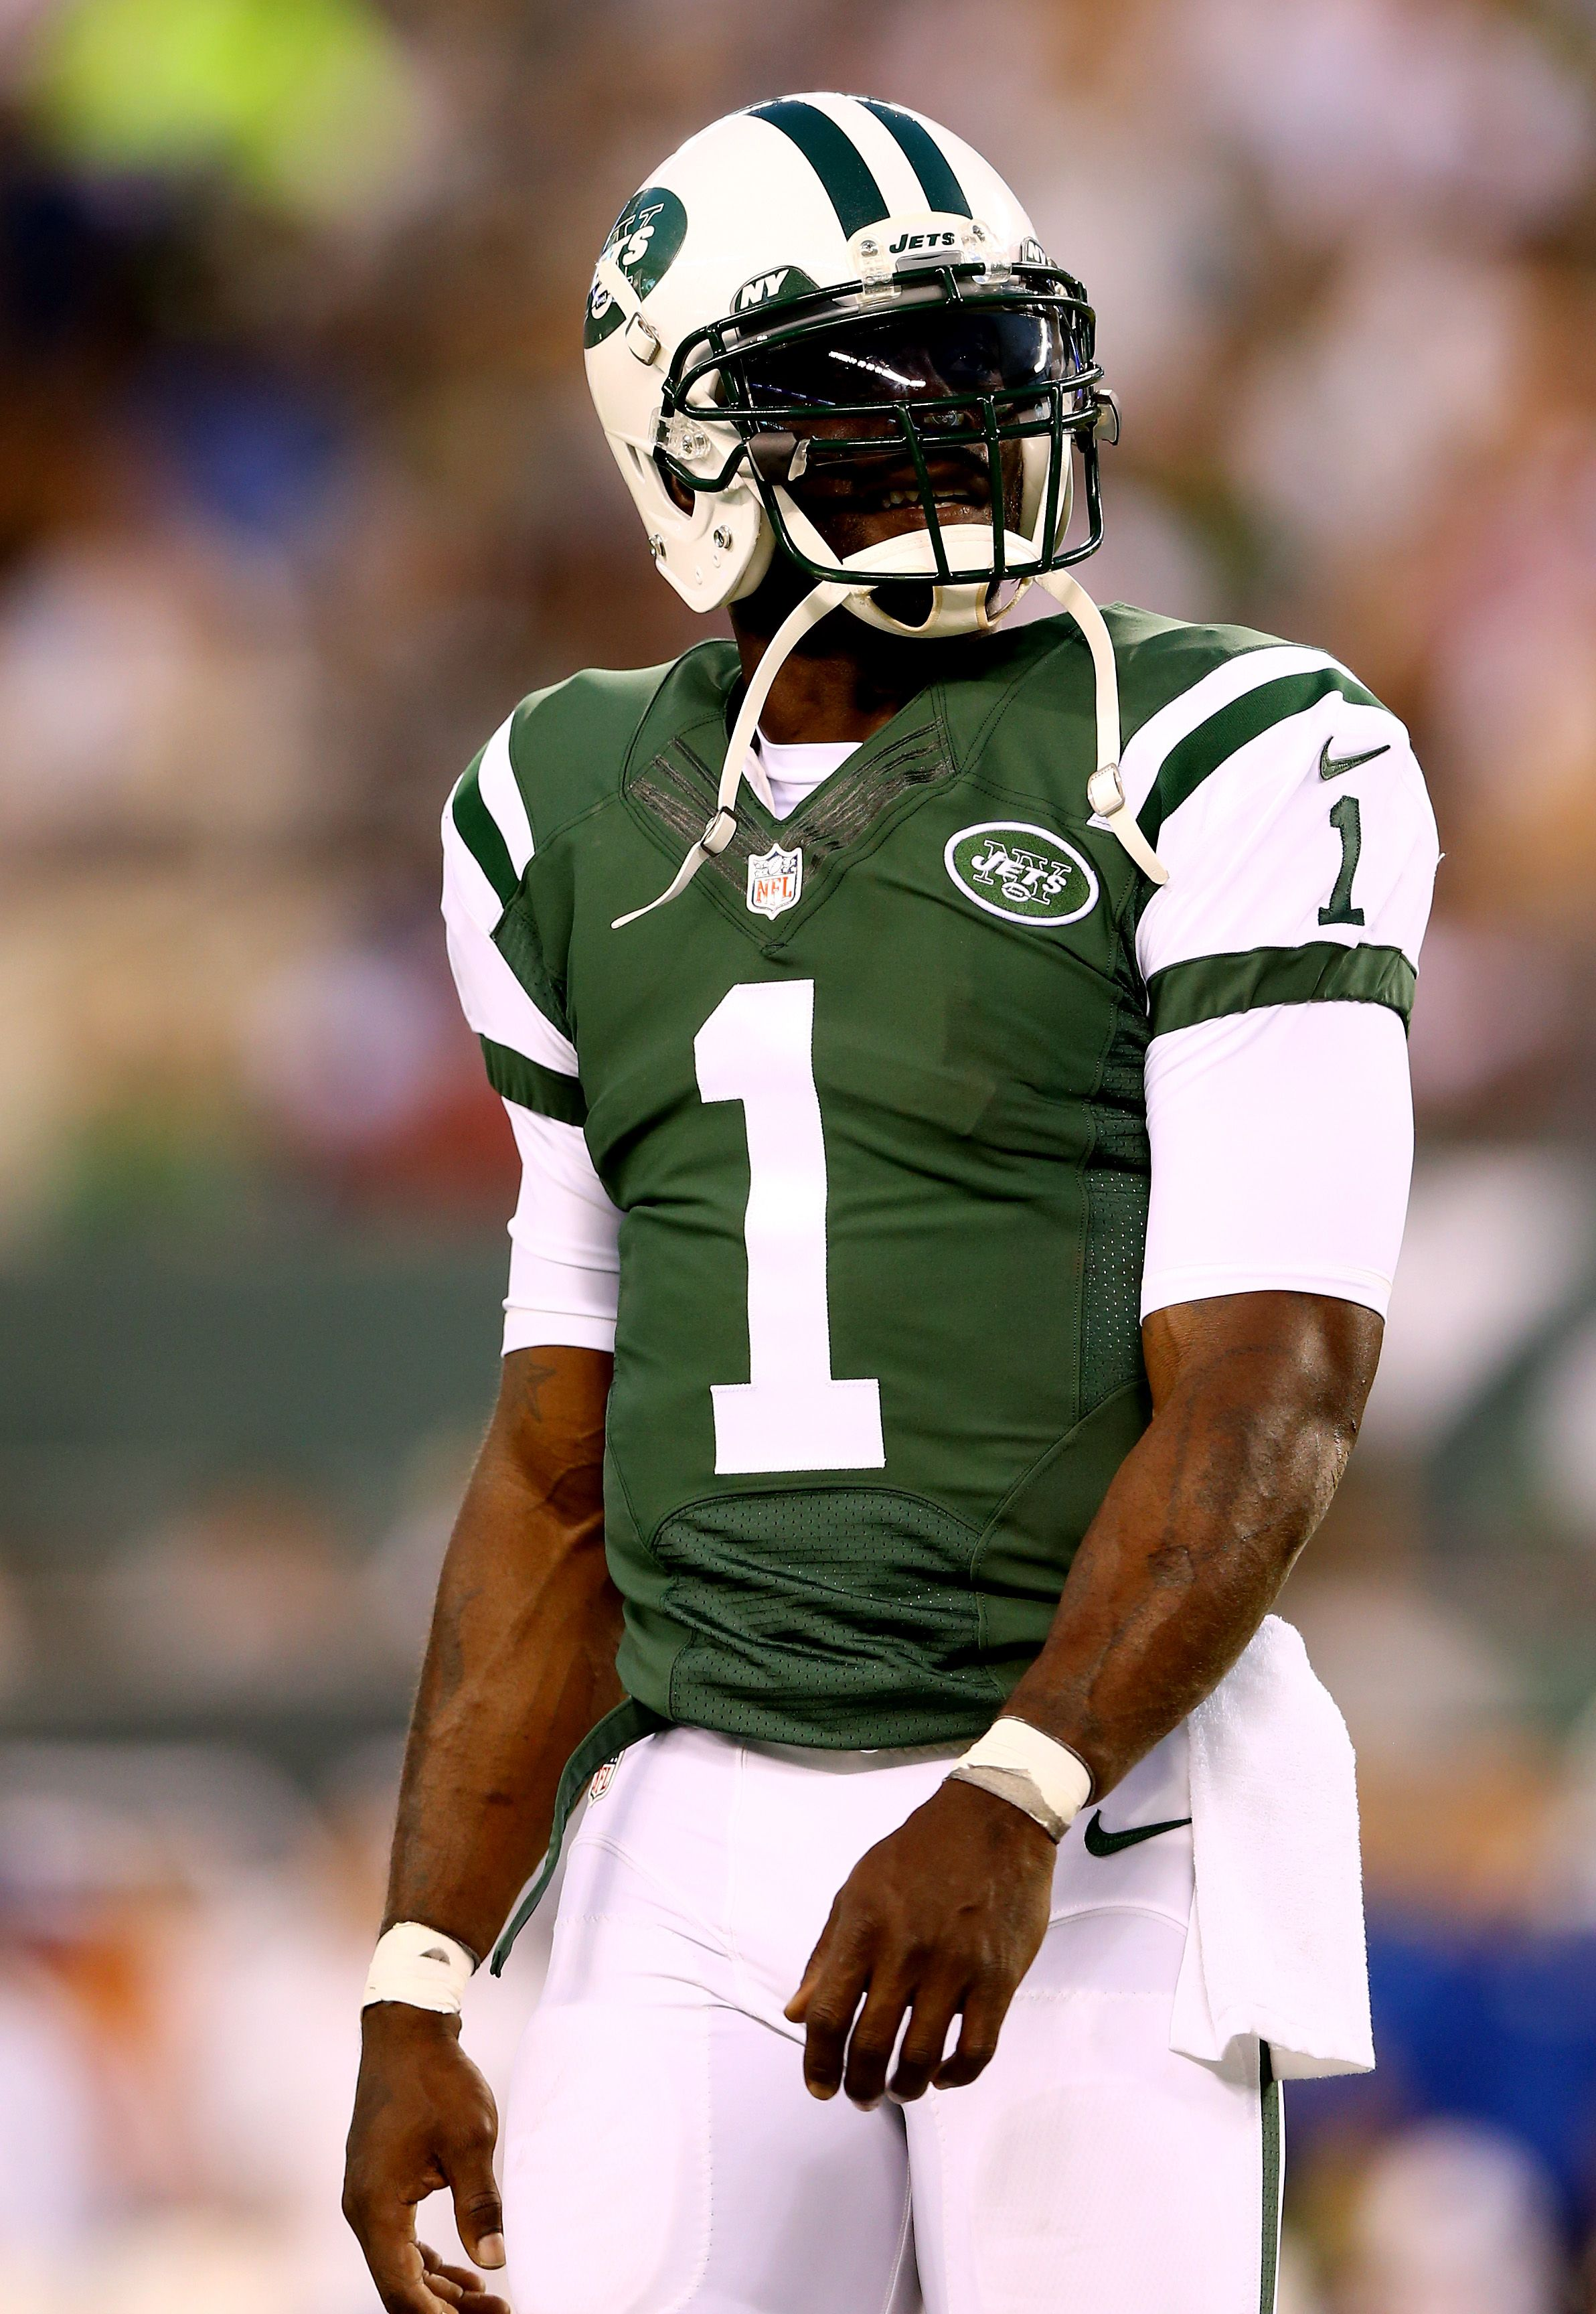 b82a18a38 Michael Vick Net Worth - Find Out More About His Earnings